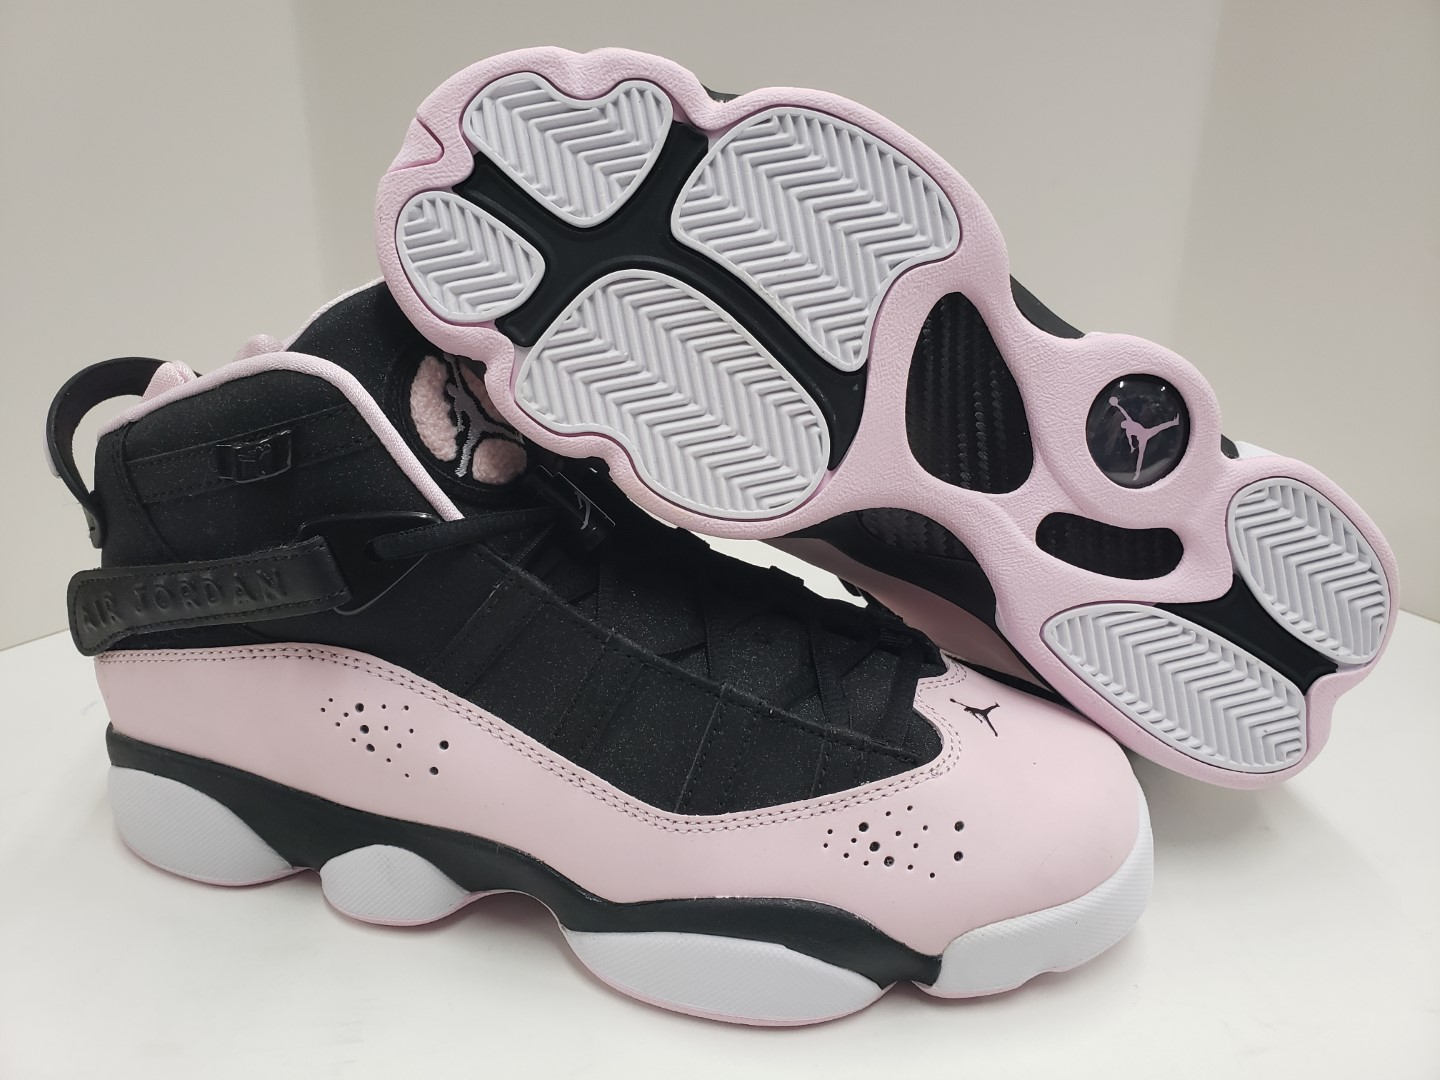 d84ffcaec963 NIB Girls Nike Jordan 6 Rings (GS) Black Pink Foam Anthracite 323399 ...